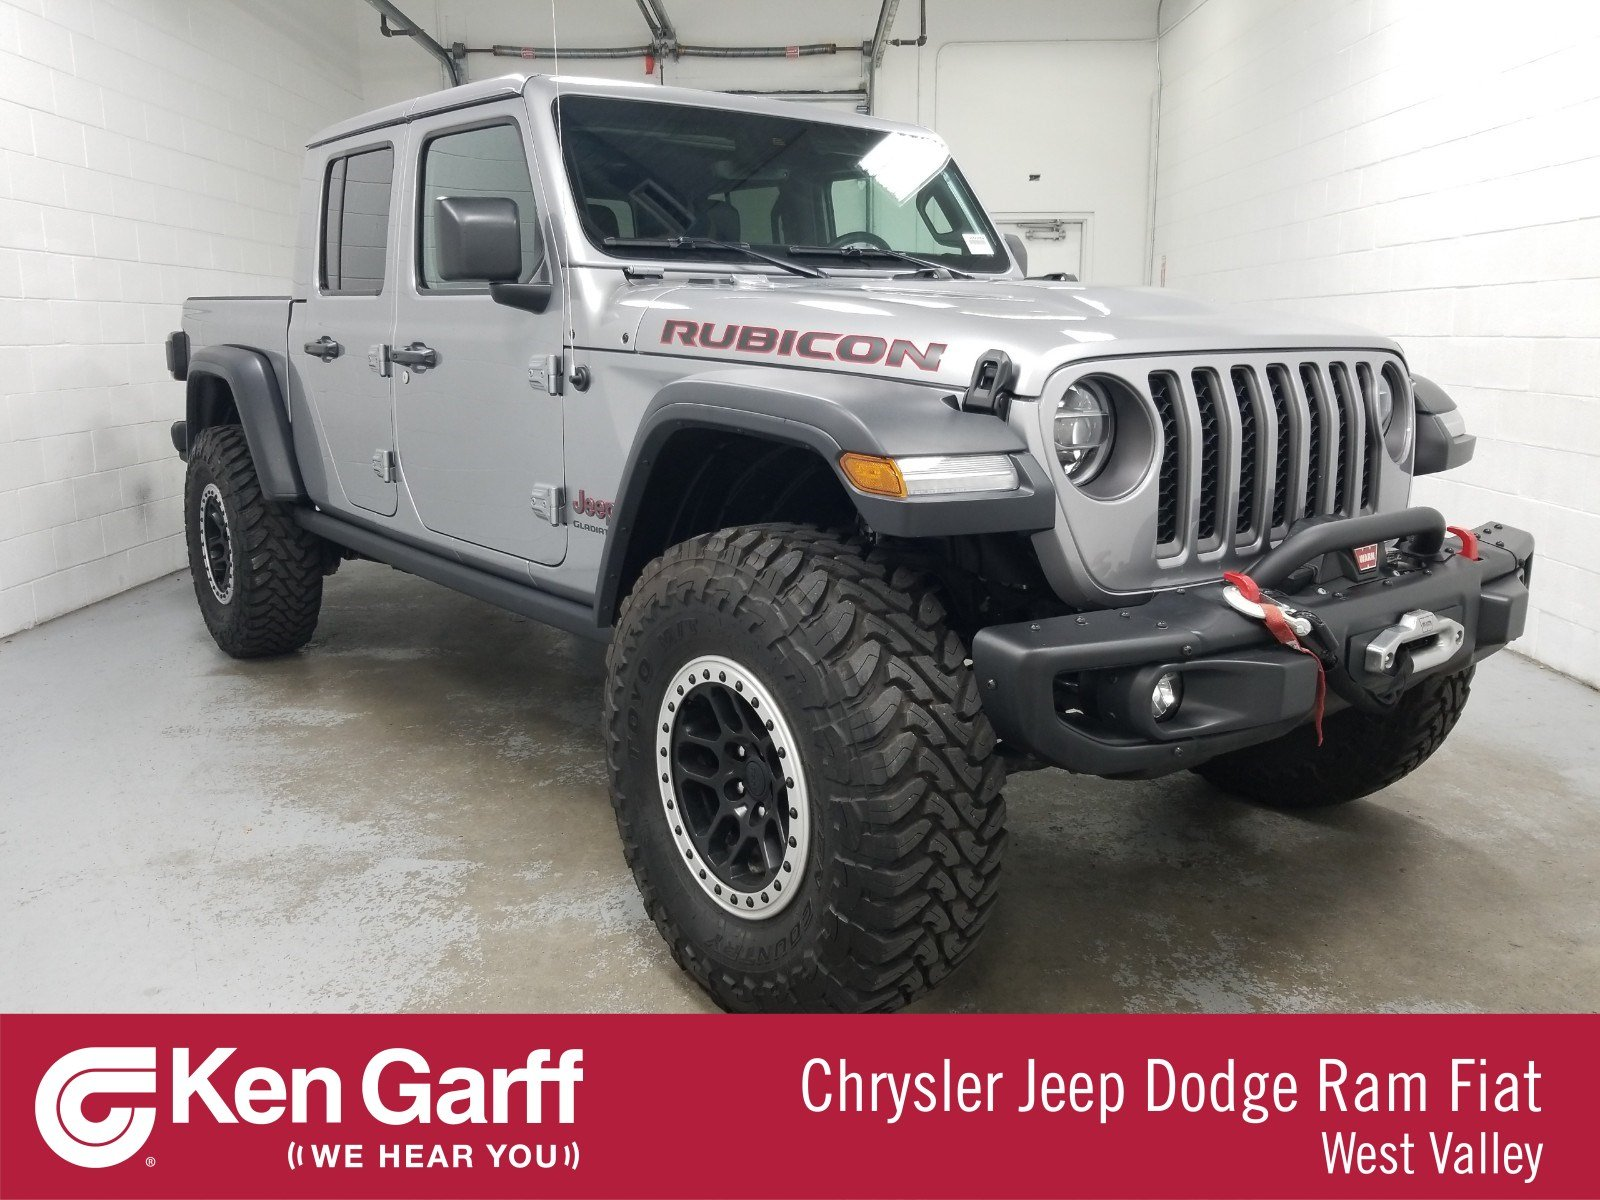 Certified Pre-Owned 2020 Jeep Gladiator Rubicon